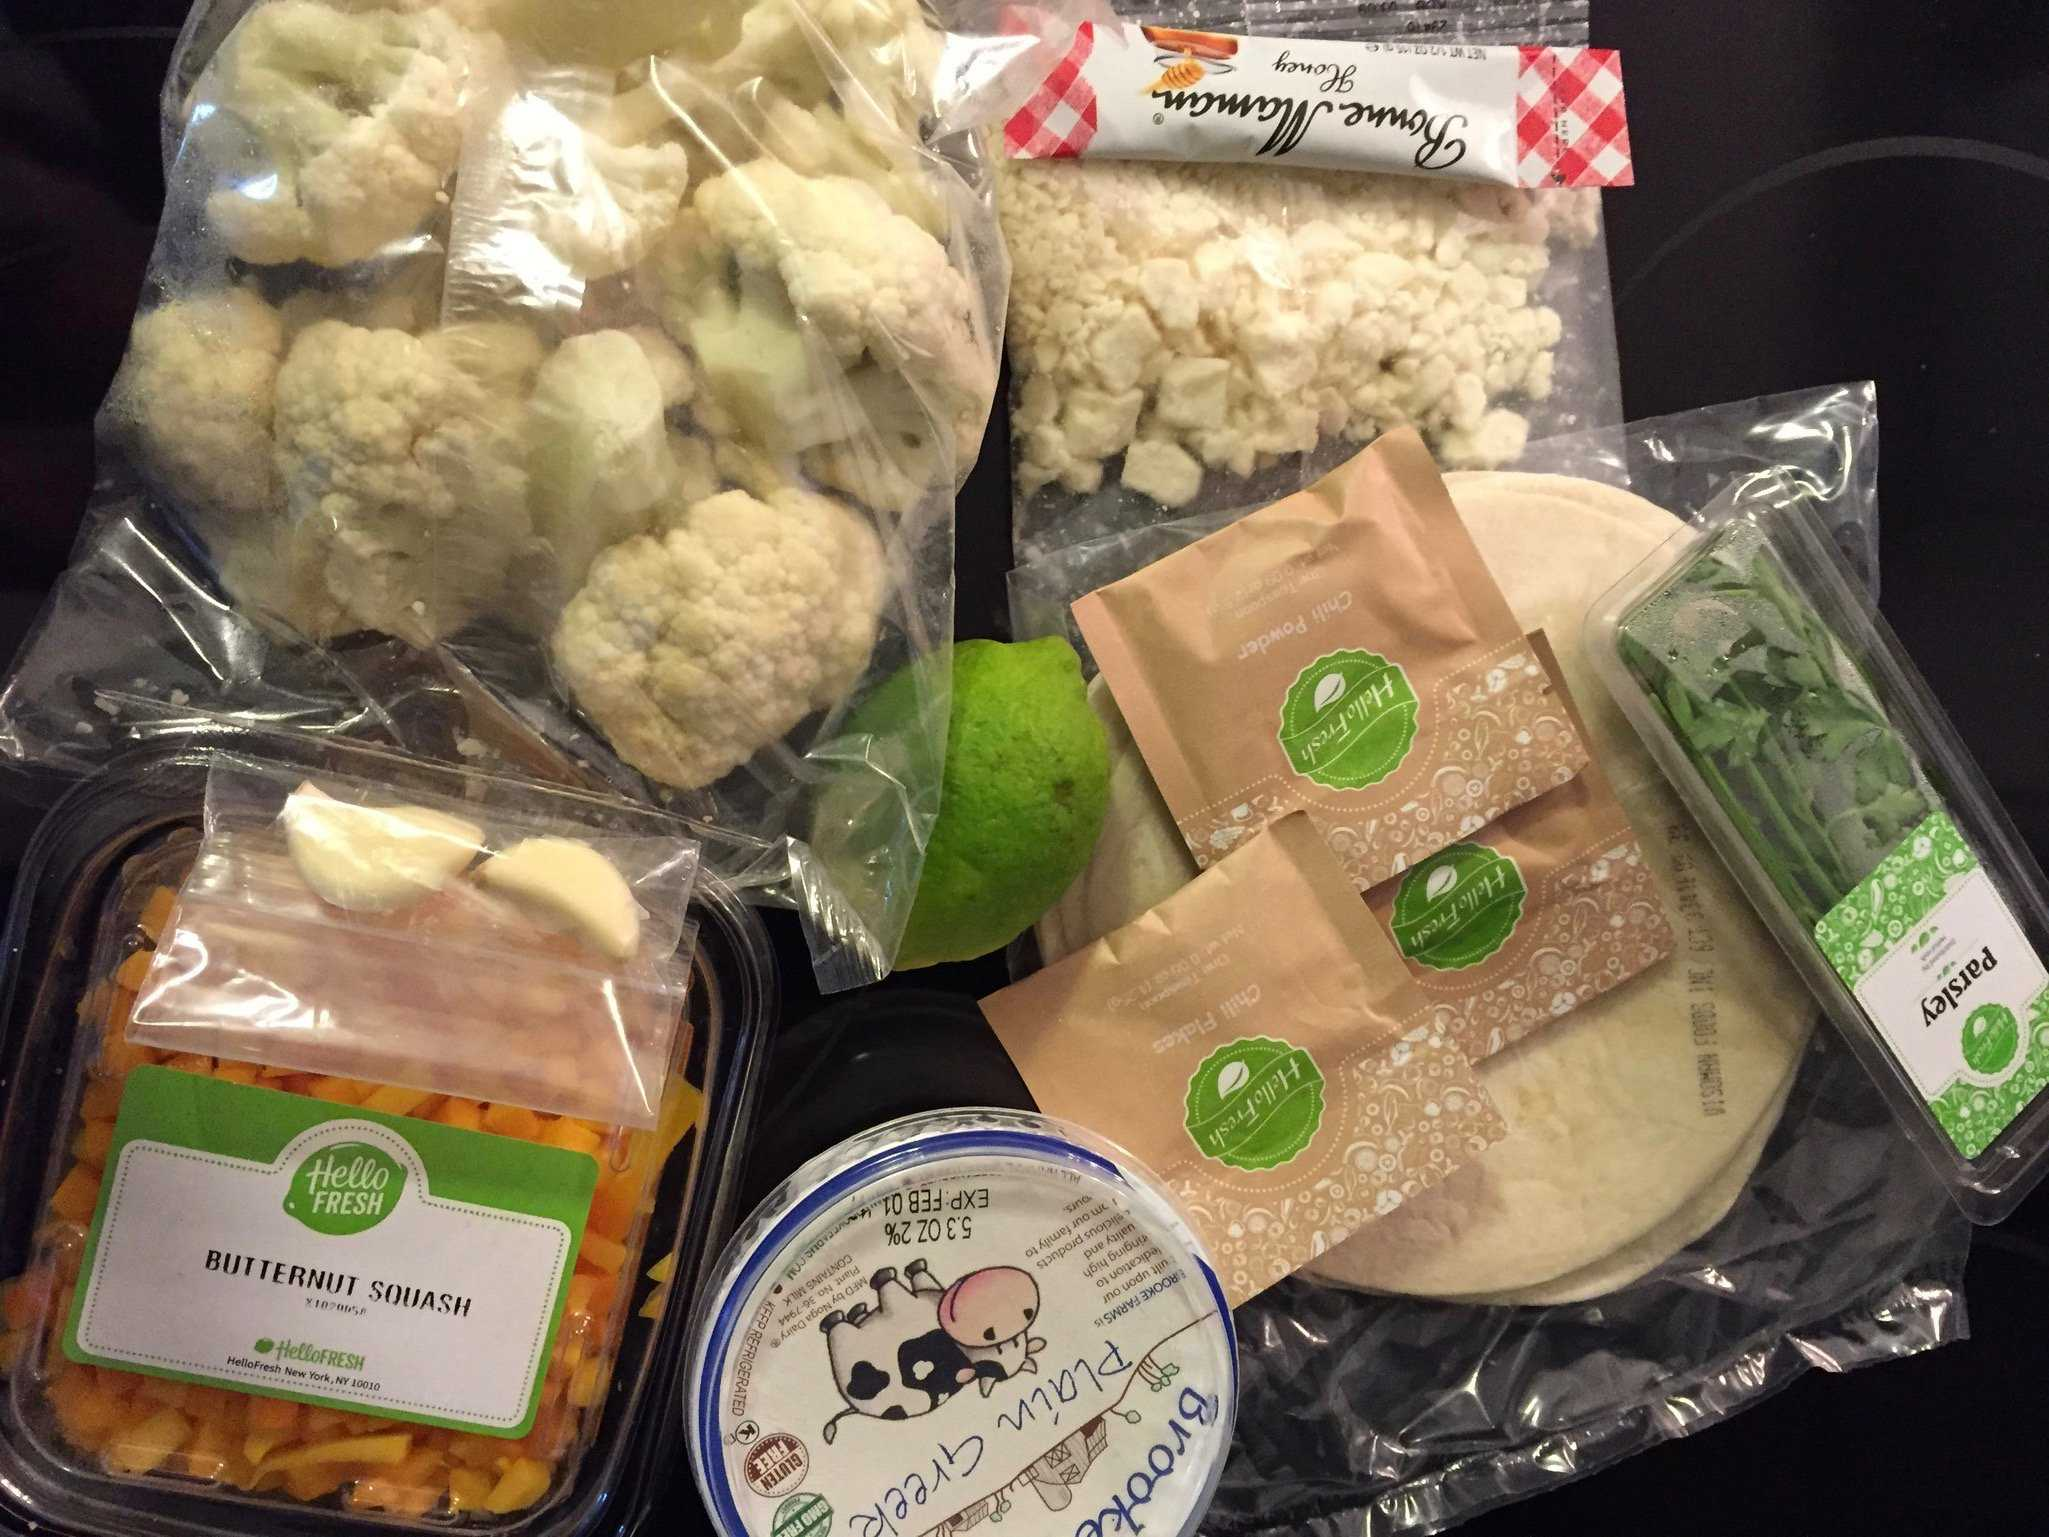 White apron dc calories - 35 Minutes Level 1 578 Calories Per Serving When You Say Tacos You Don T Think Cauliflower And Squash At All